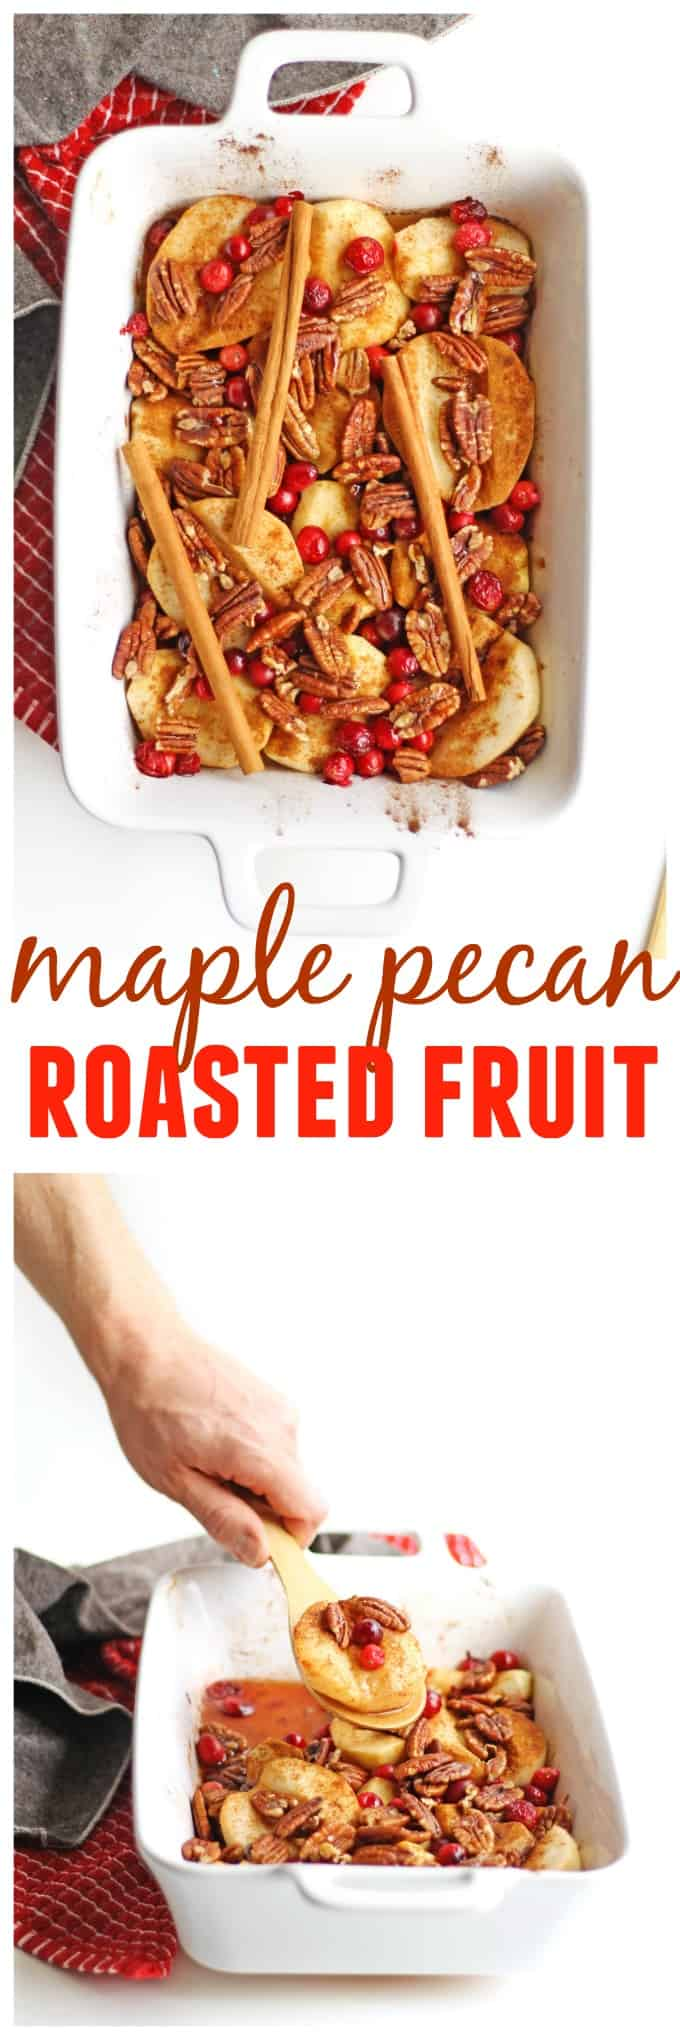 Vegan maple pecan fall fruit bake recipe! Roasted fall fruit you can eat as a side dish, with yogurt, or as a healthy dessert! // Rhubarbarians / breakfast / baked apples / roasted apples / #maplepecan #healthydessert #fallbreakfast #vegan #recipe #fruitbake #roastedfruit